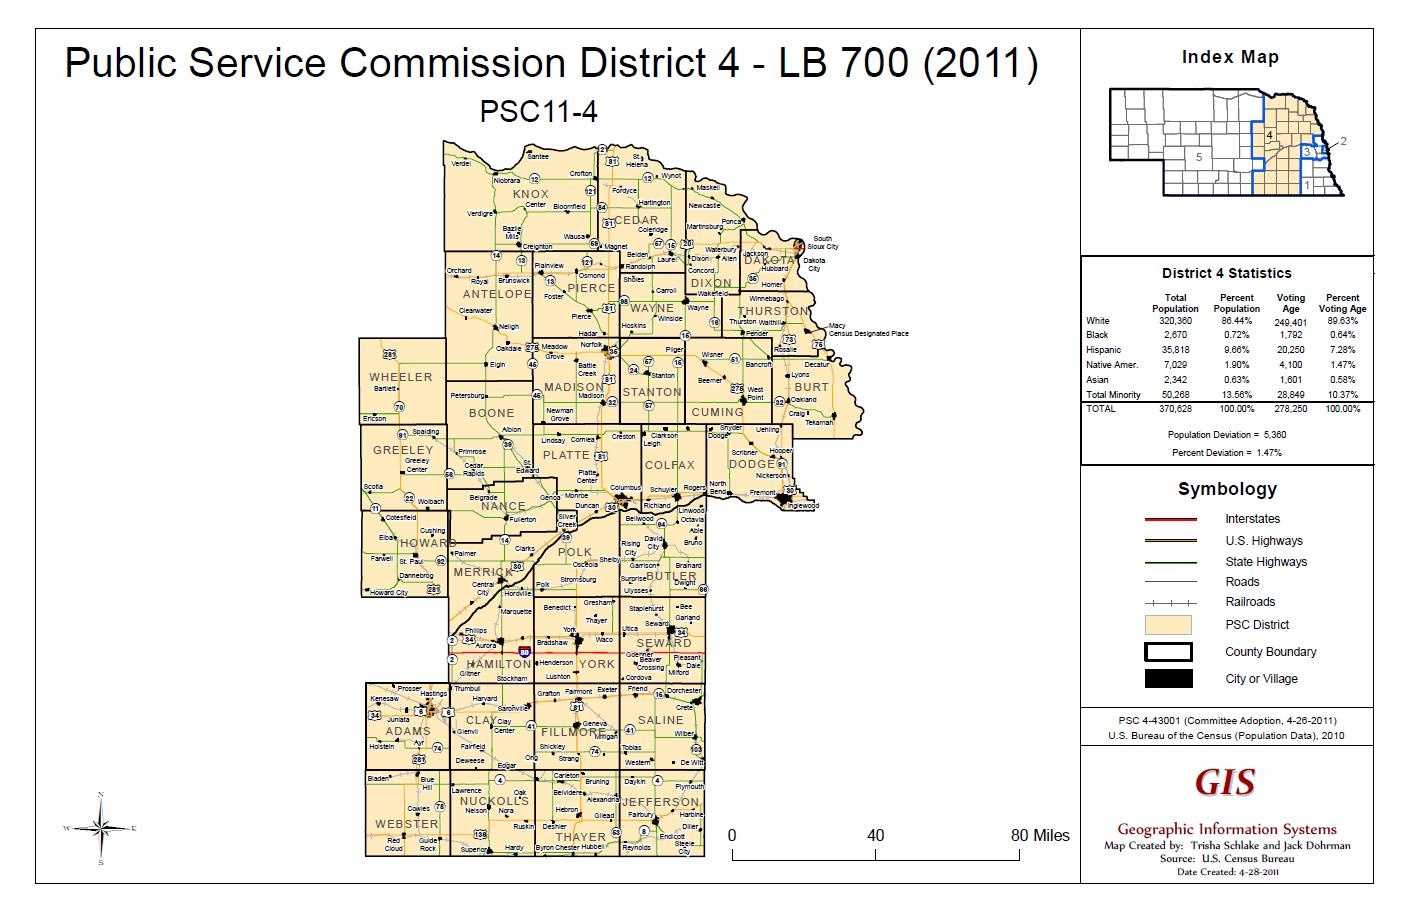 PSC District 4 Map